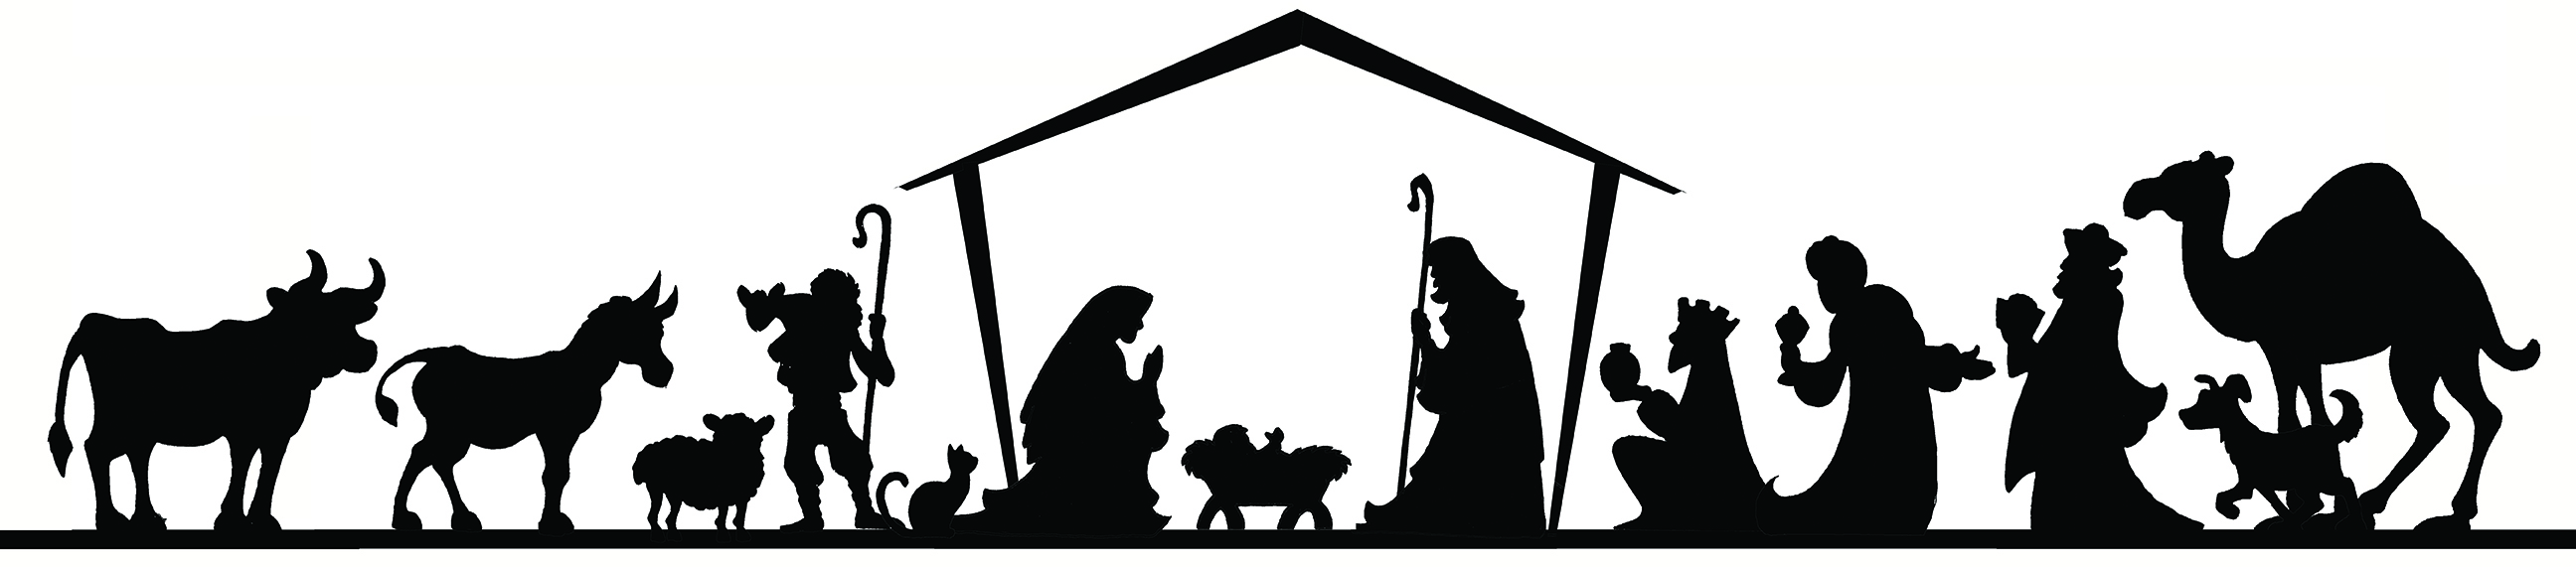 How to diy nativity board hallmark channel download nativity stencil pdf get more information about this episode the latest diy solutioingenieria Gallery